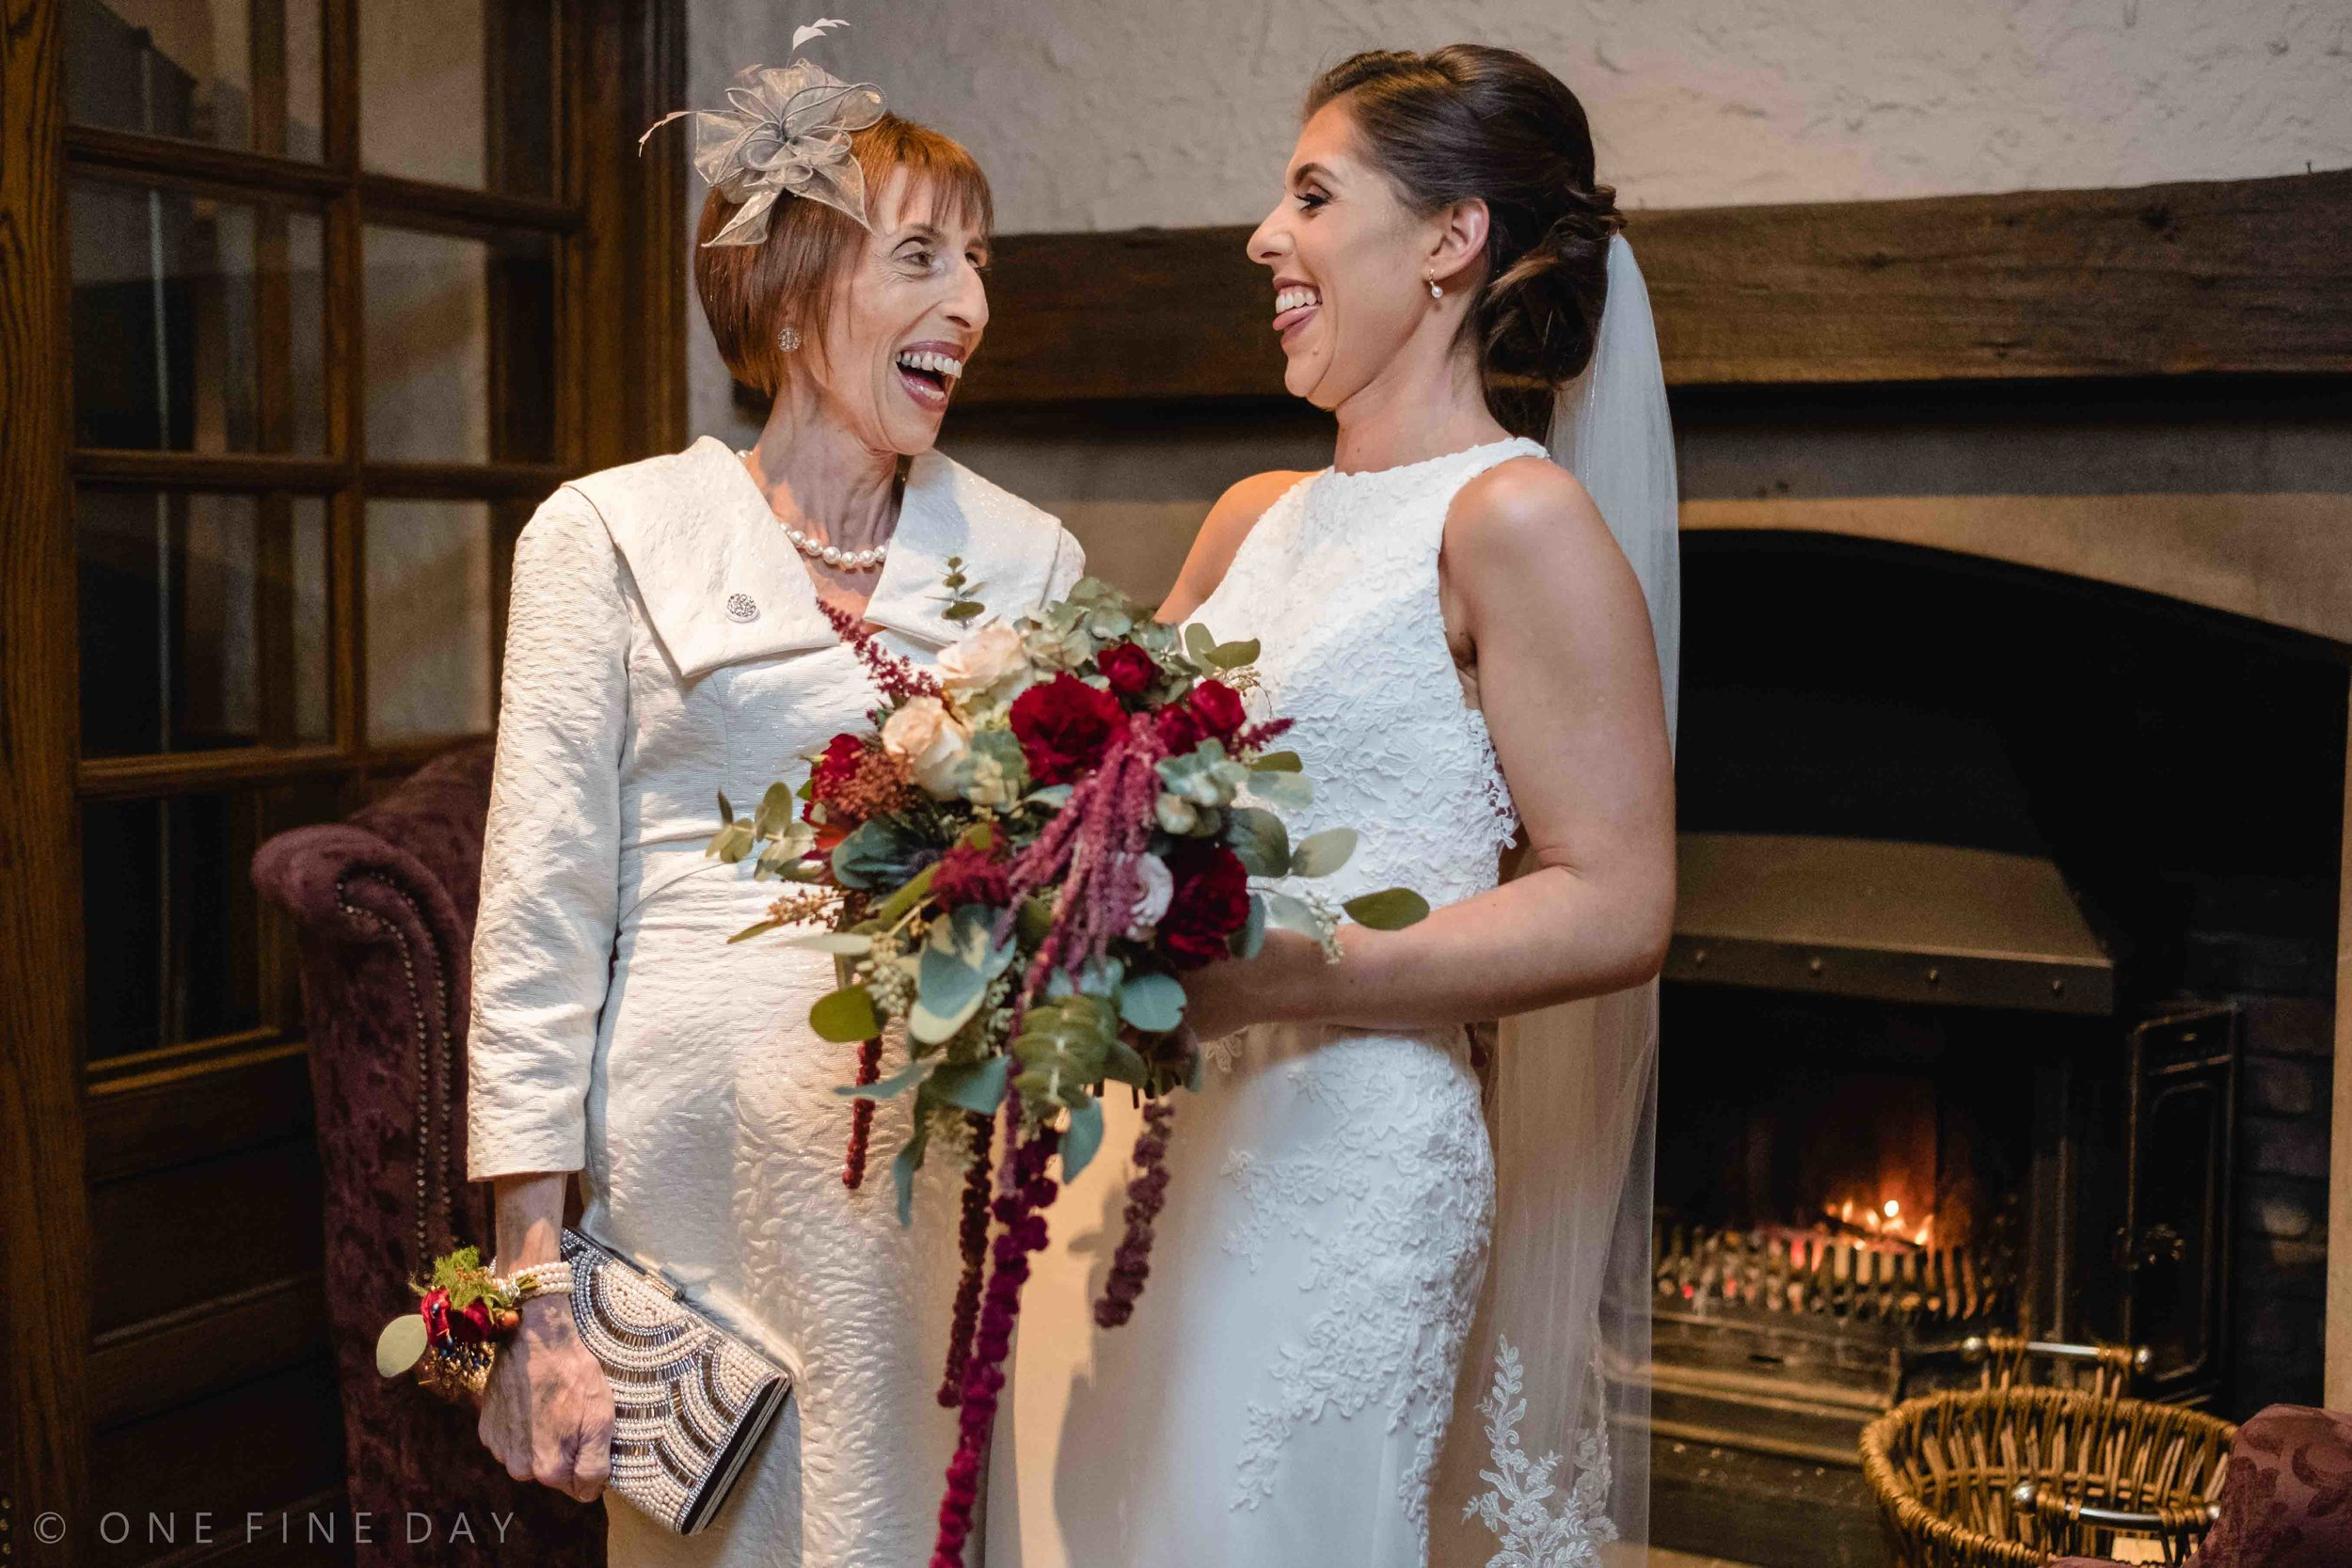 Mother of the bride and her daughter at wedding natural and relaxed